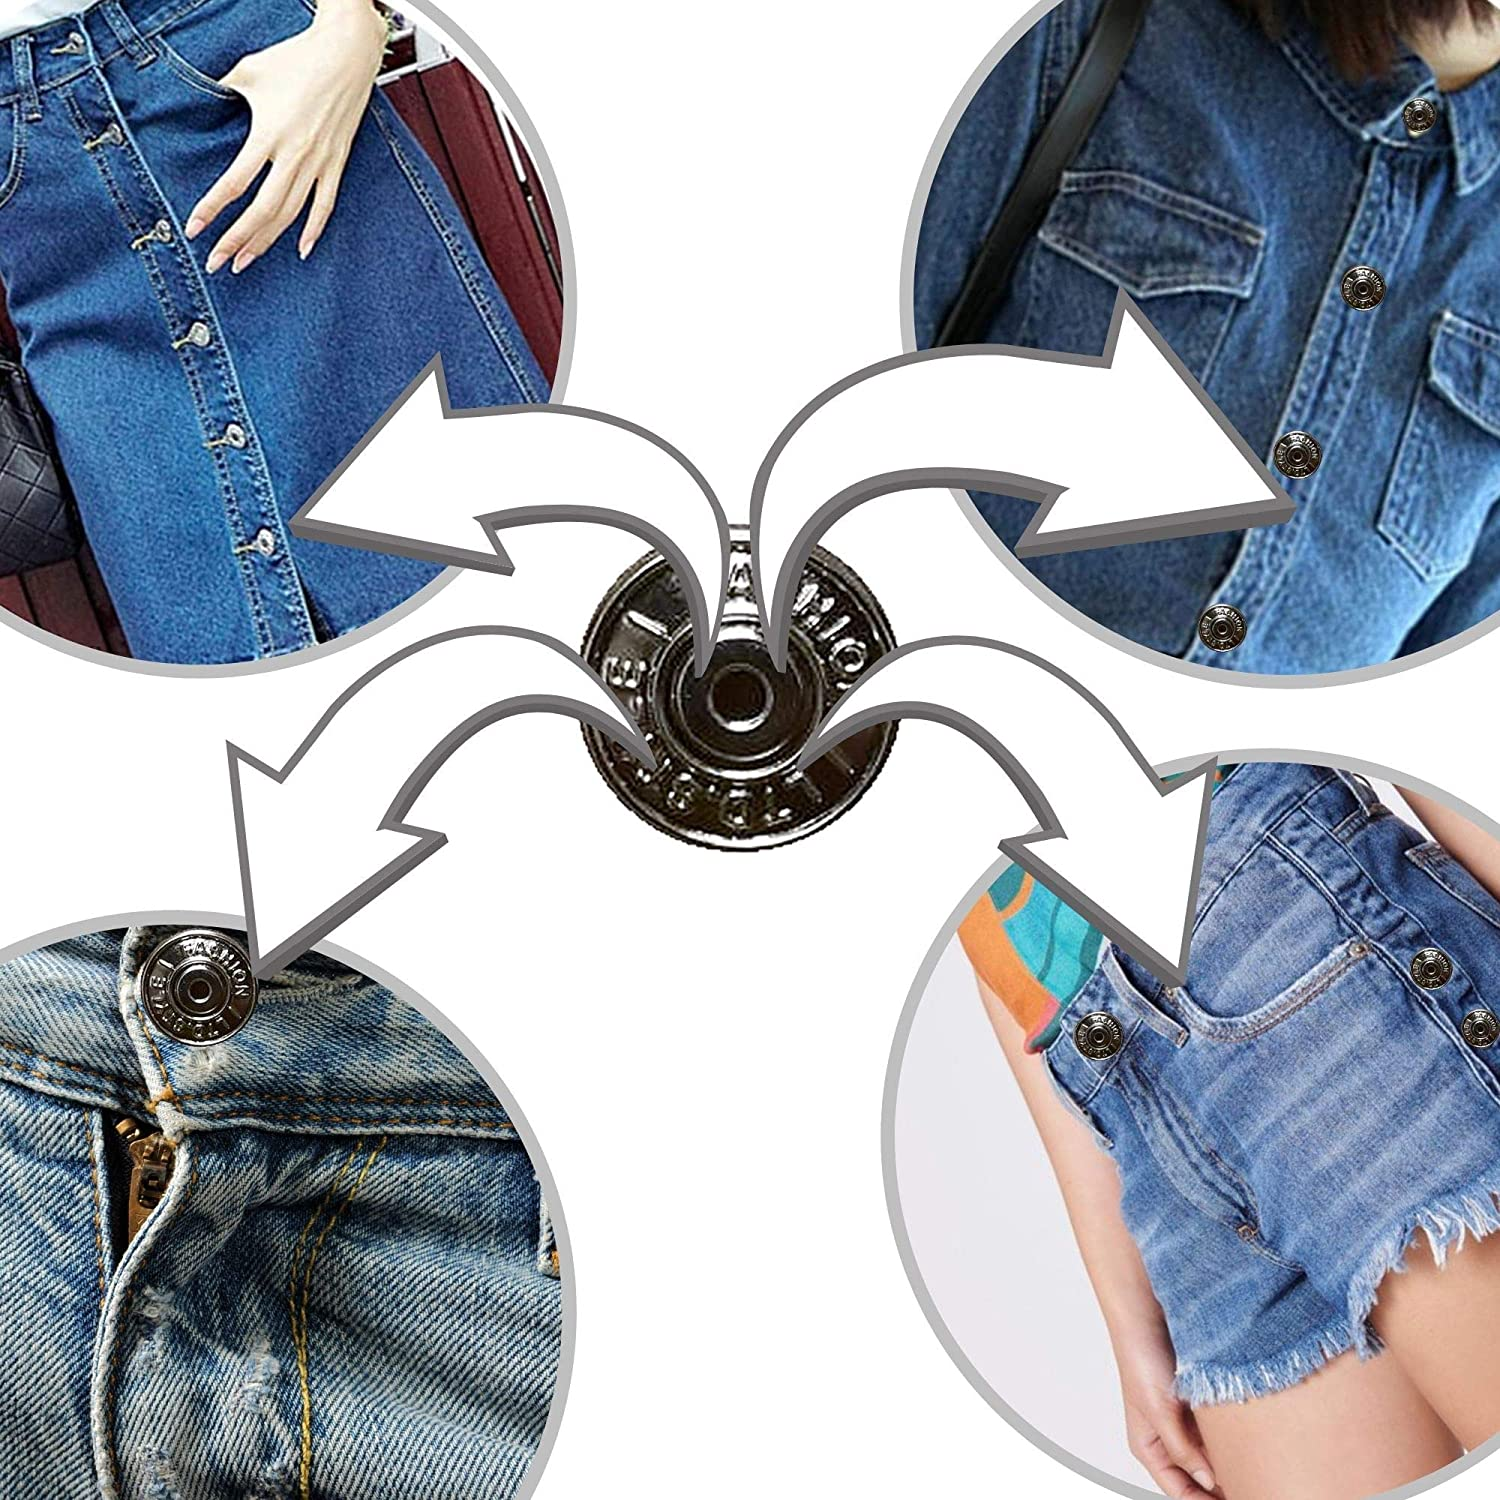 Jeans 12 Pieces Per Color Replacement Kit with Buttons /& Fasteners in Clear Plastic Storage Box for Denims 24 Sets Silver and Copper Jean Buttons and Jackets Repair